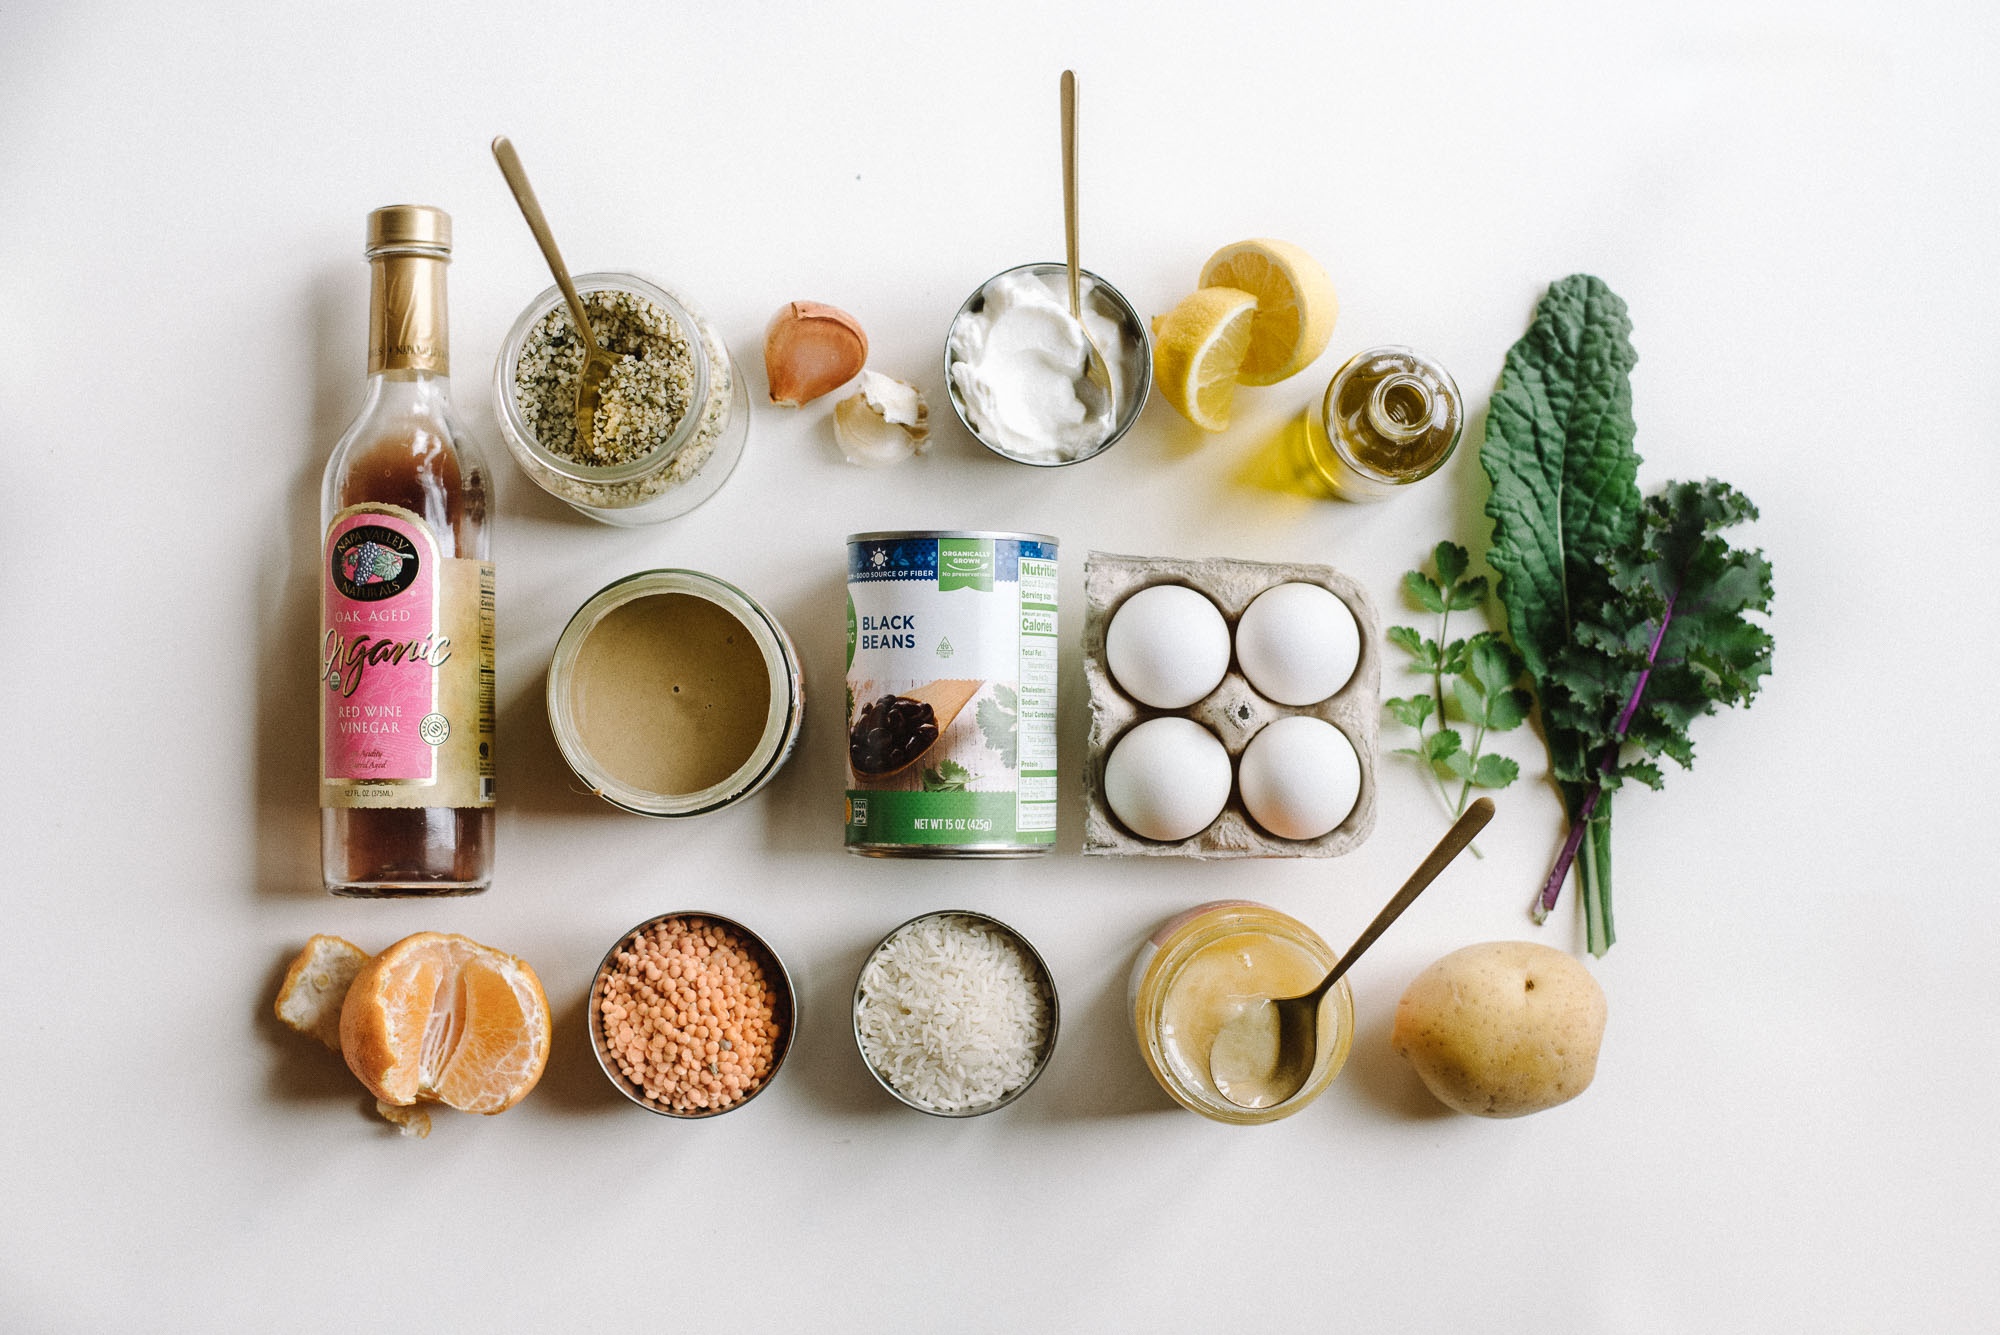 Wellness Made Simple How To Stock A Basic Vegetarian Kitchen Kale Caramel